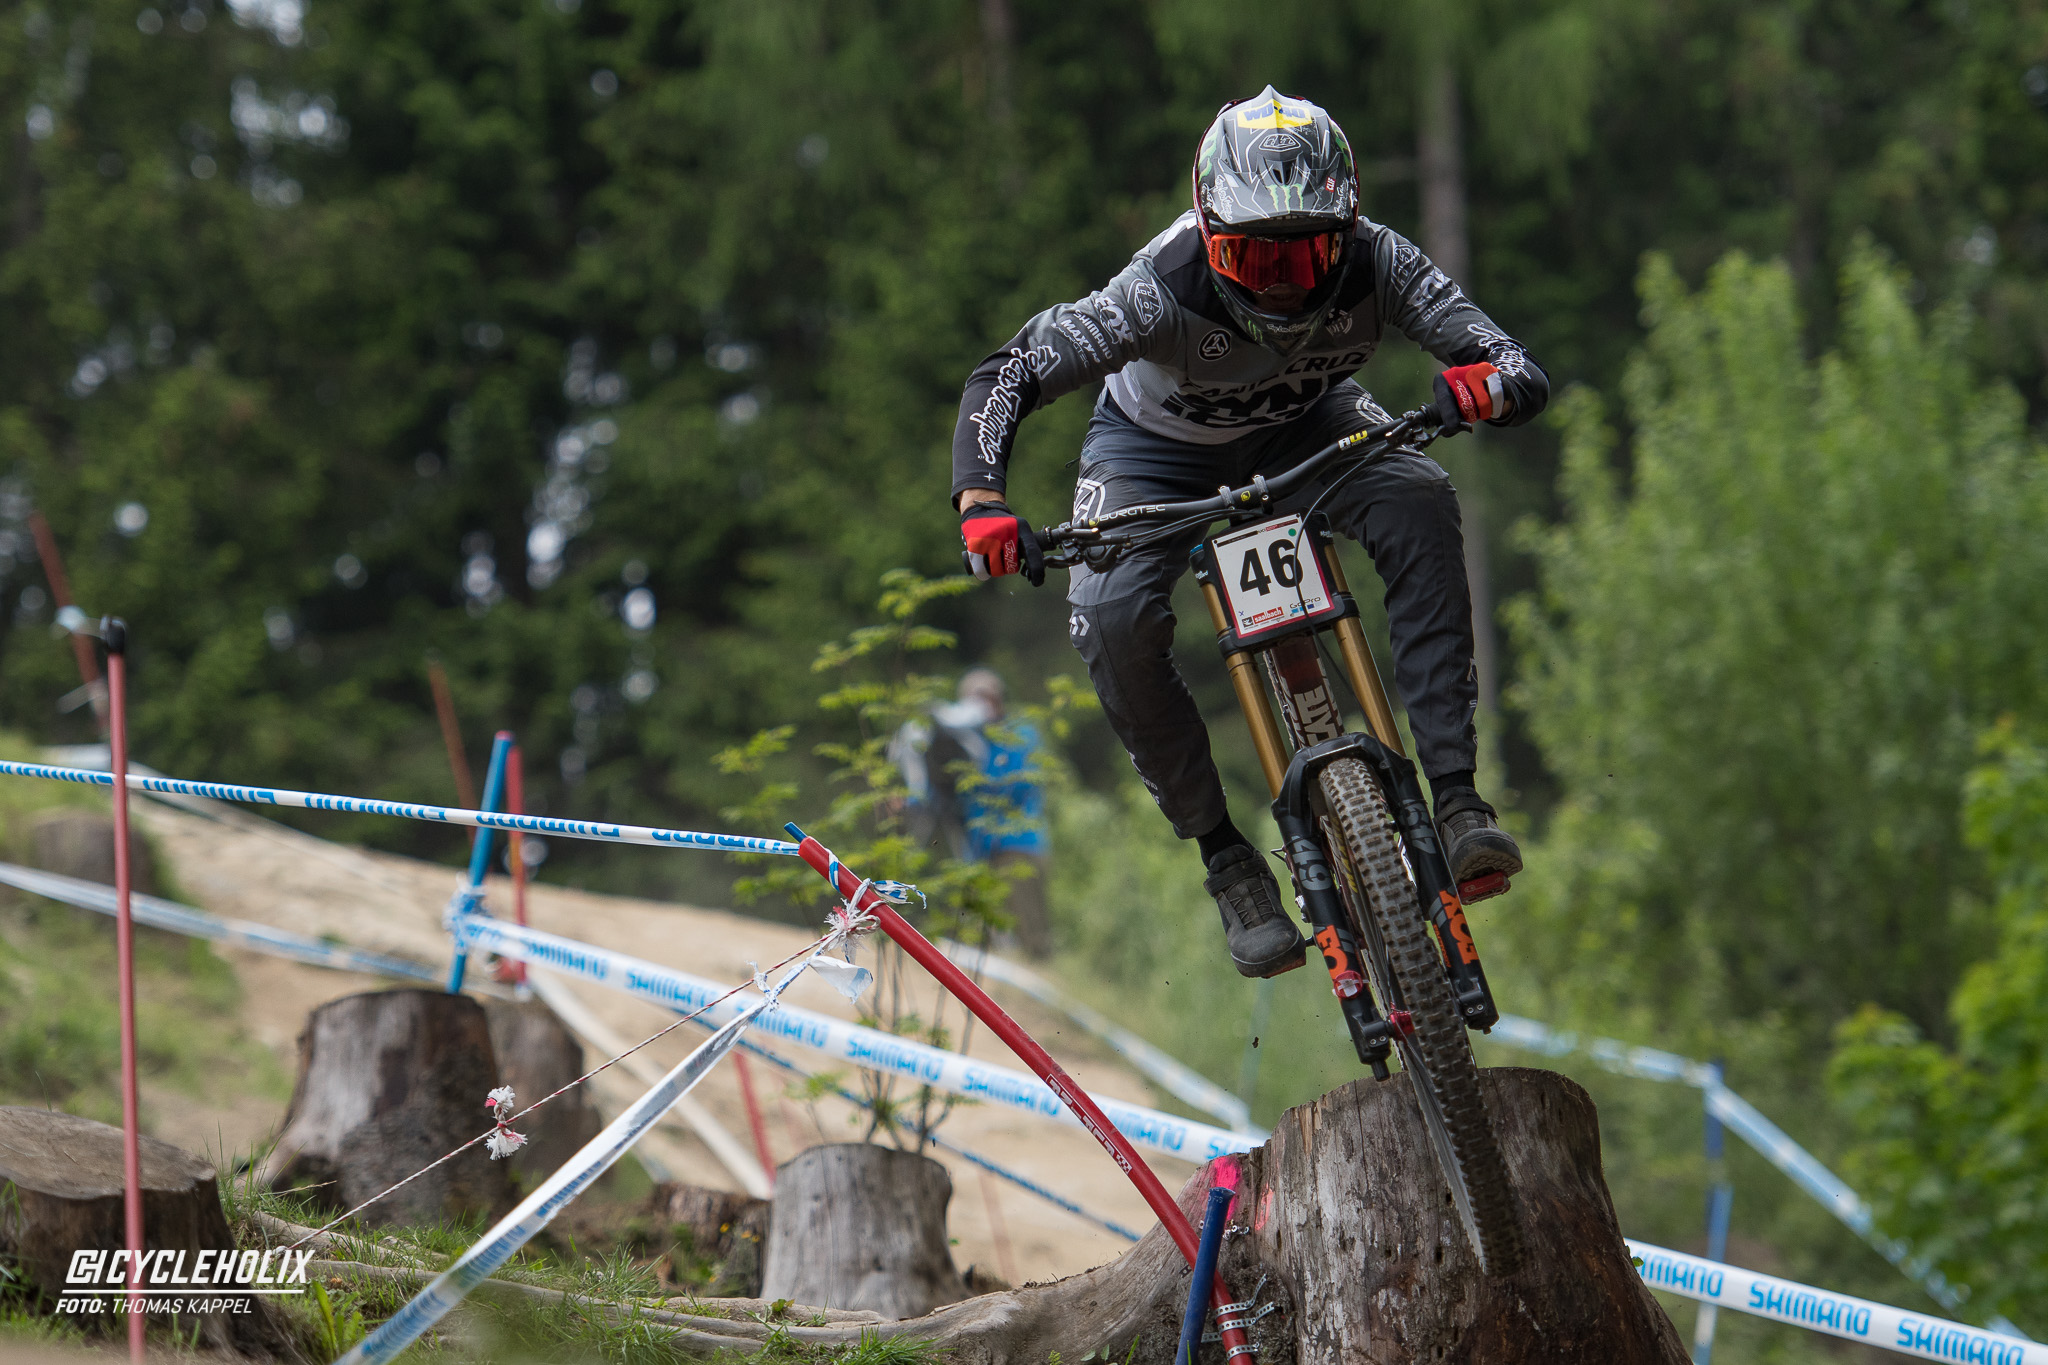 2019 Downhill Worldcup Leogang Finale Action QA 17